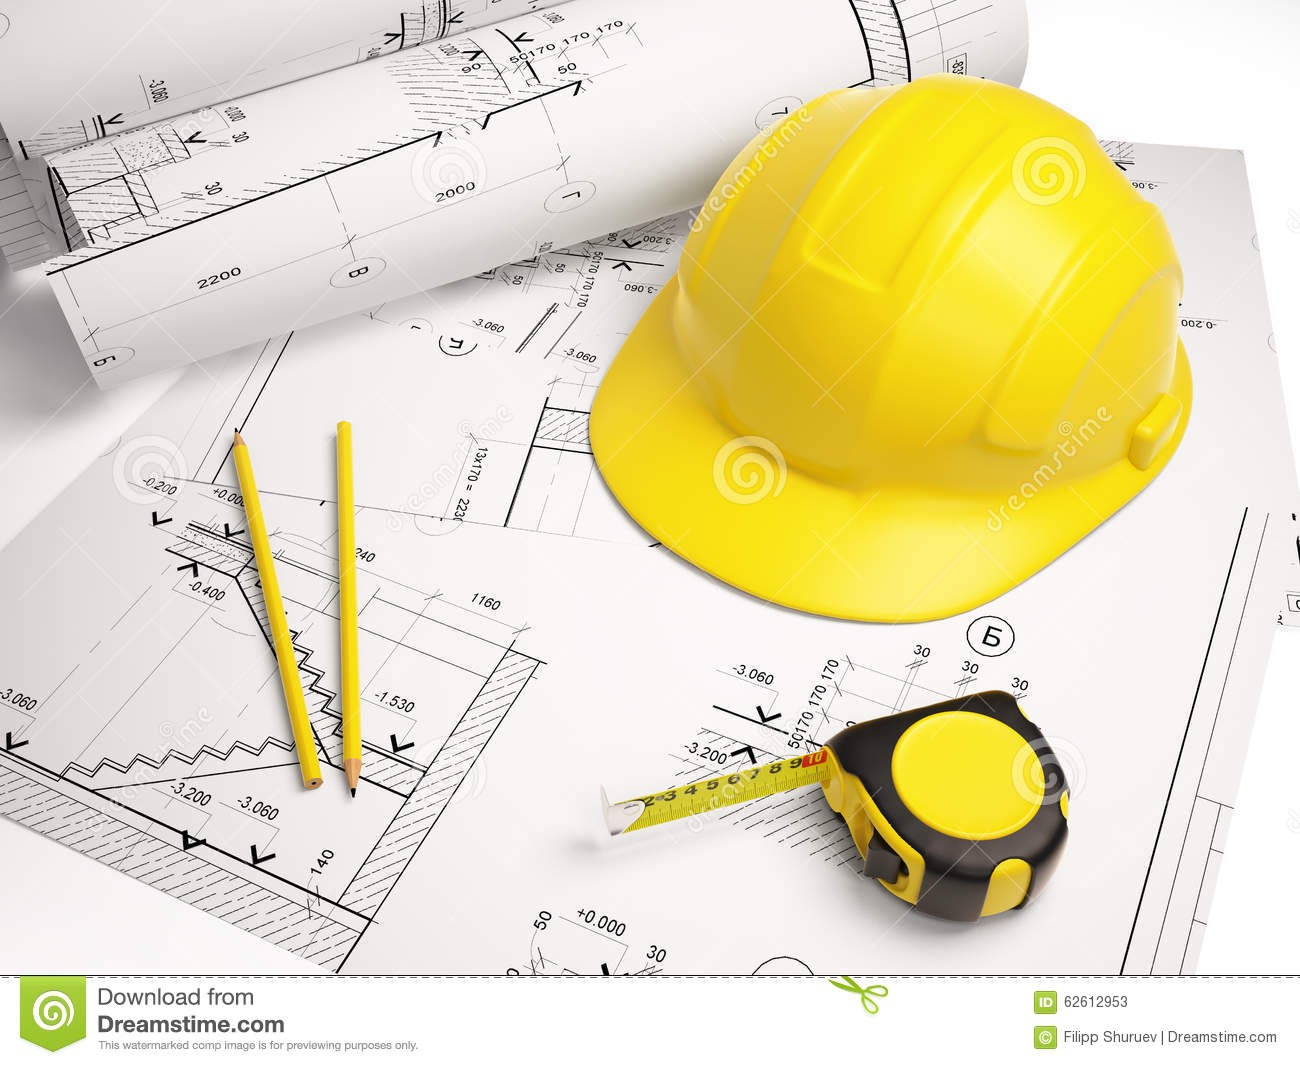 Architectural Drawings With Construction Tools